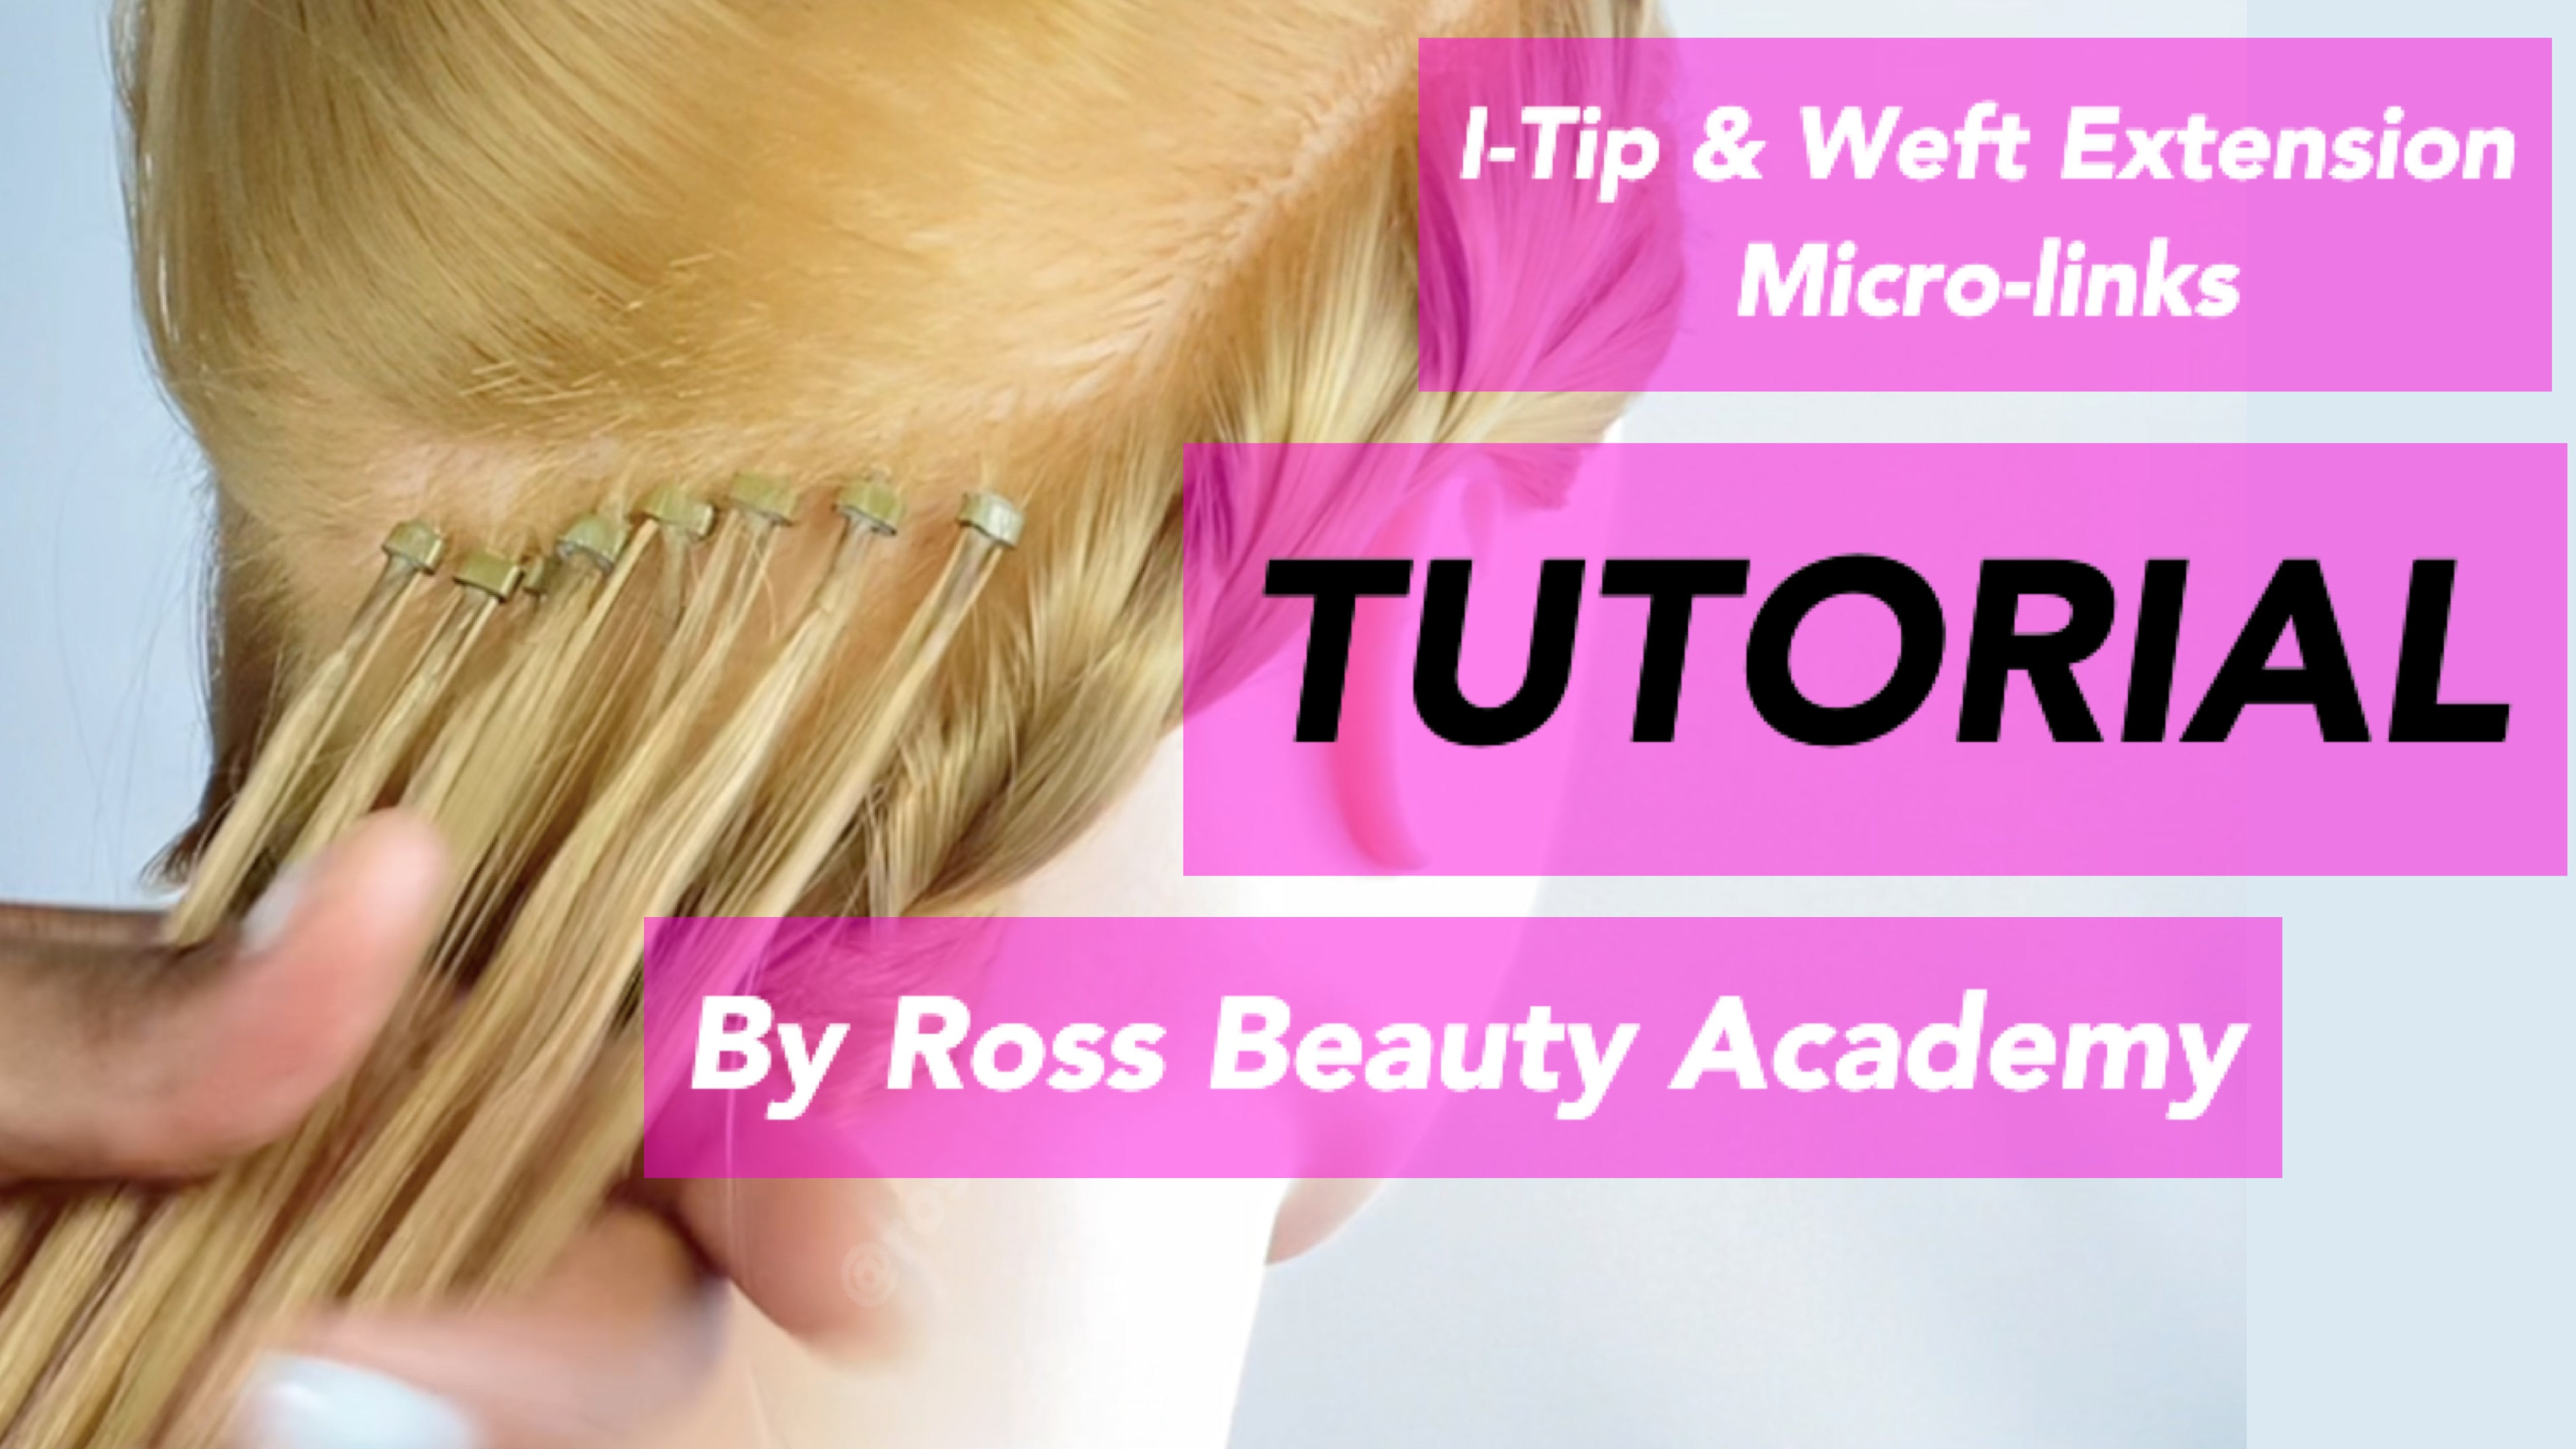 I-Tip & Weft Extension Micro- Link Tutorial